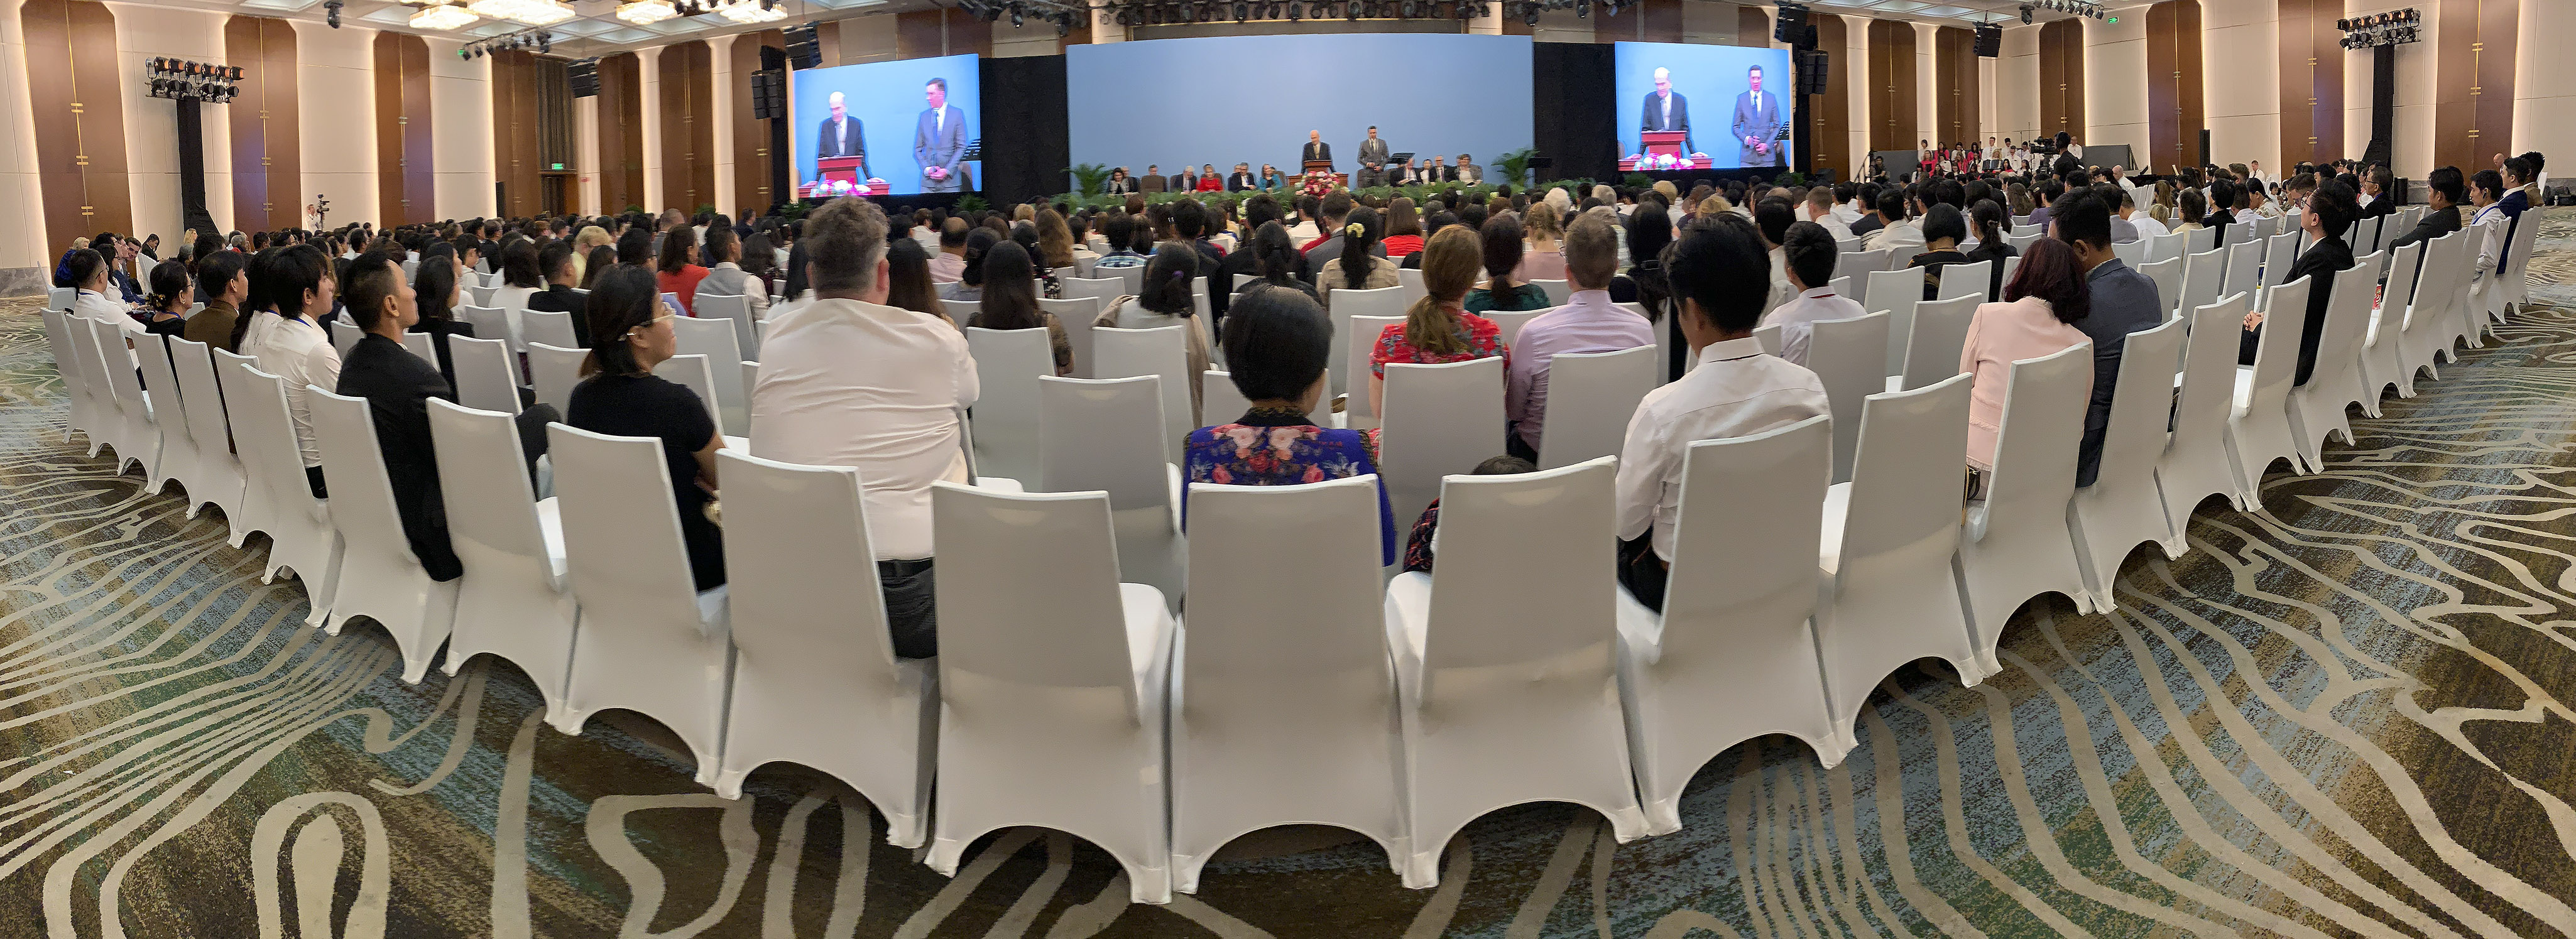 President Russell M. Nelson of The Church of Jesus Christ of Latter-day Saints speaks during a devotional in Ho Chi Minh City, Vietnam, on Nov. 18, 2019.